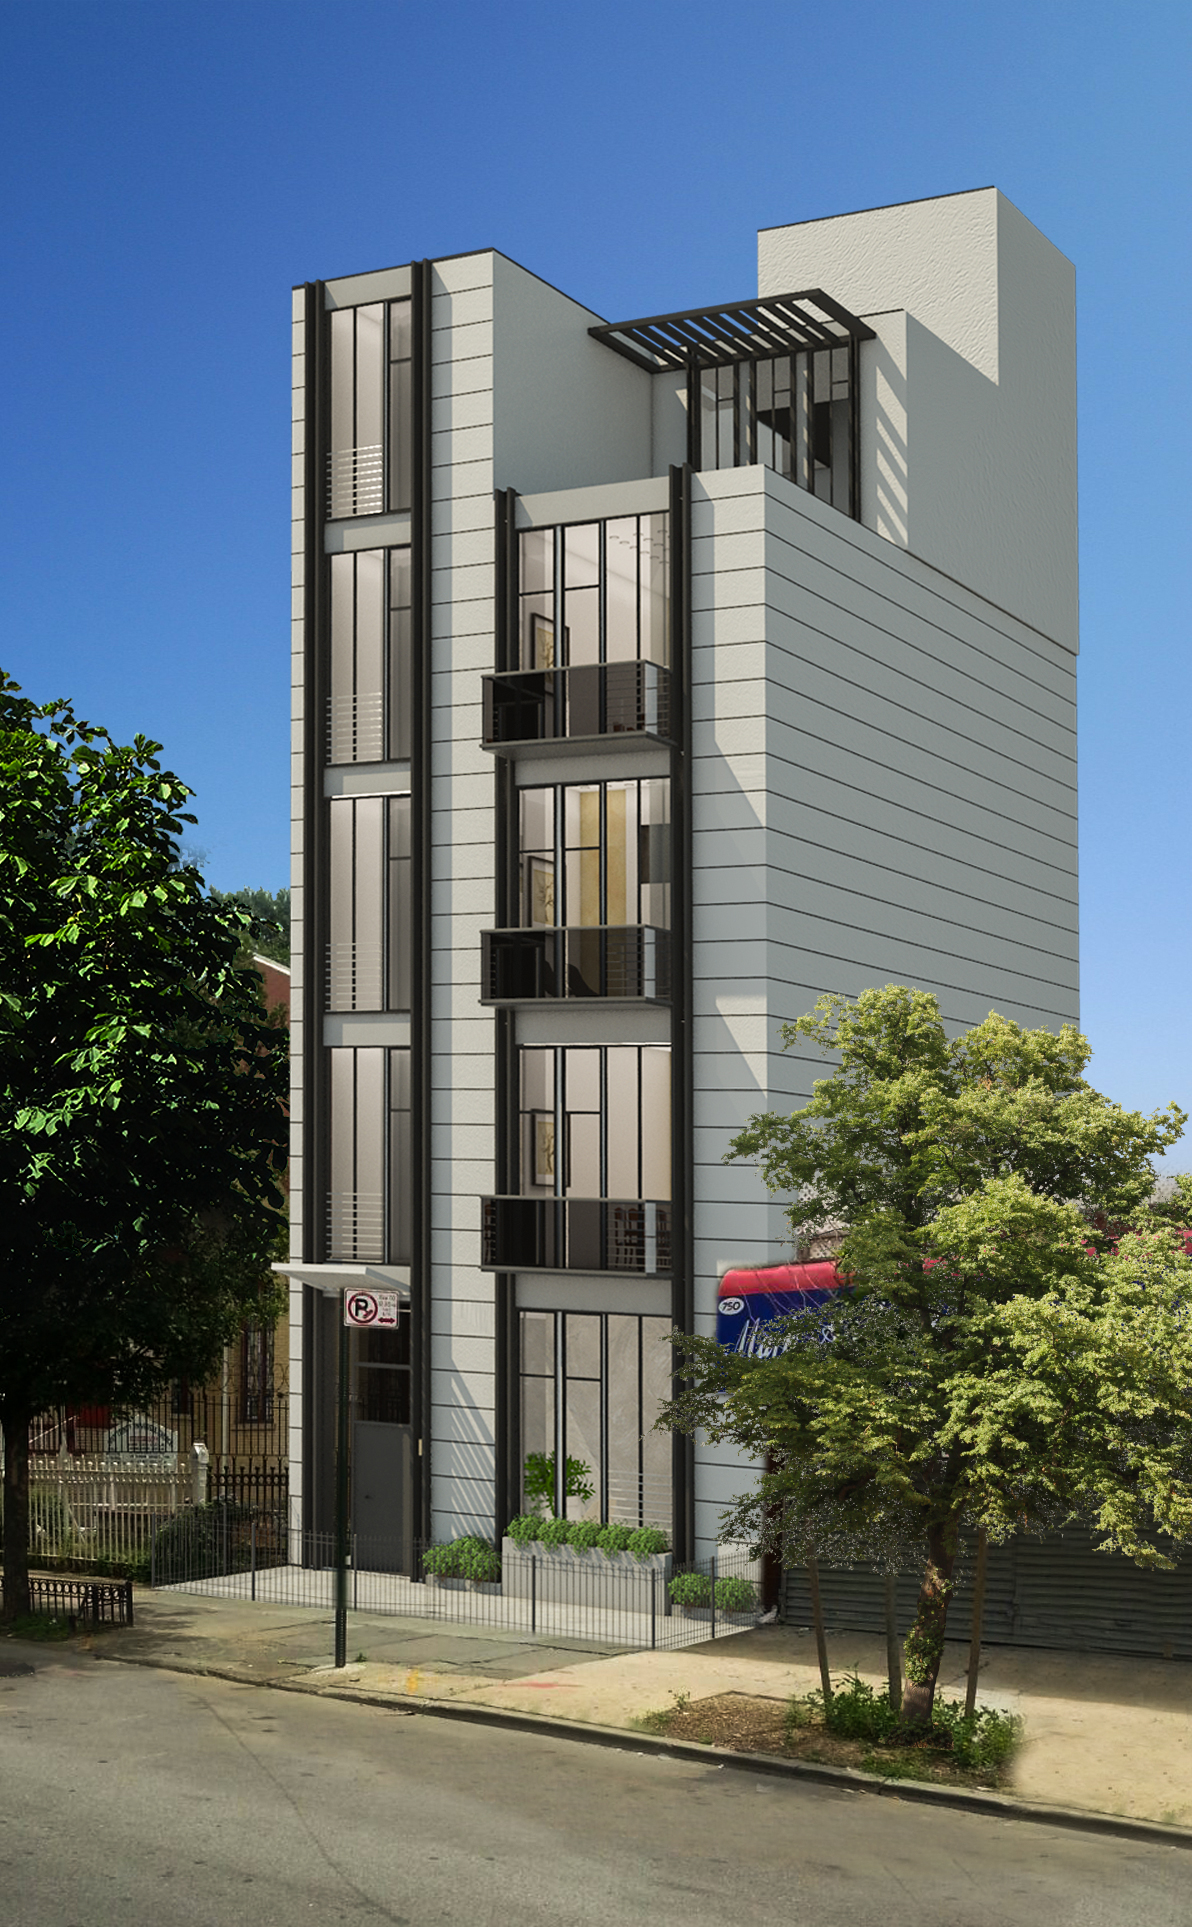 752 Quincy Street, rendering via Infinity Properties